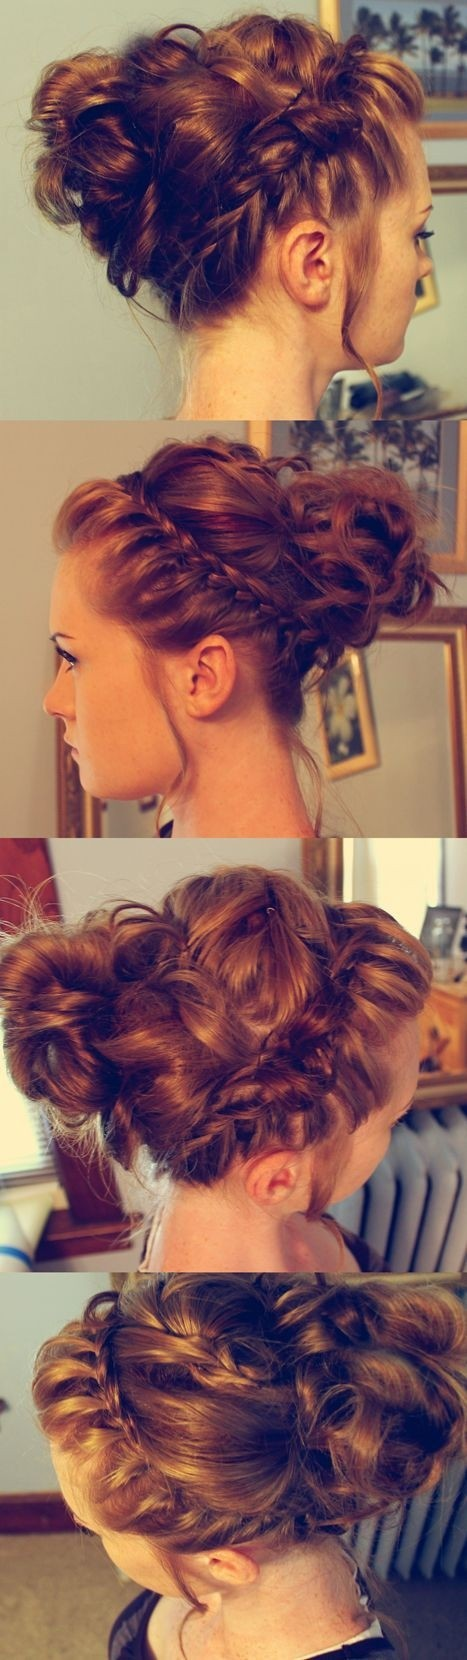 Prom Updo Hairstyles: Bun Updos with Crown Braid